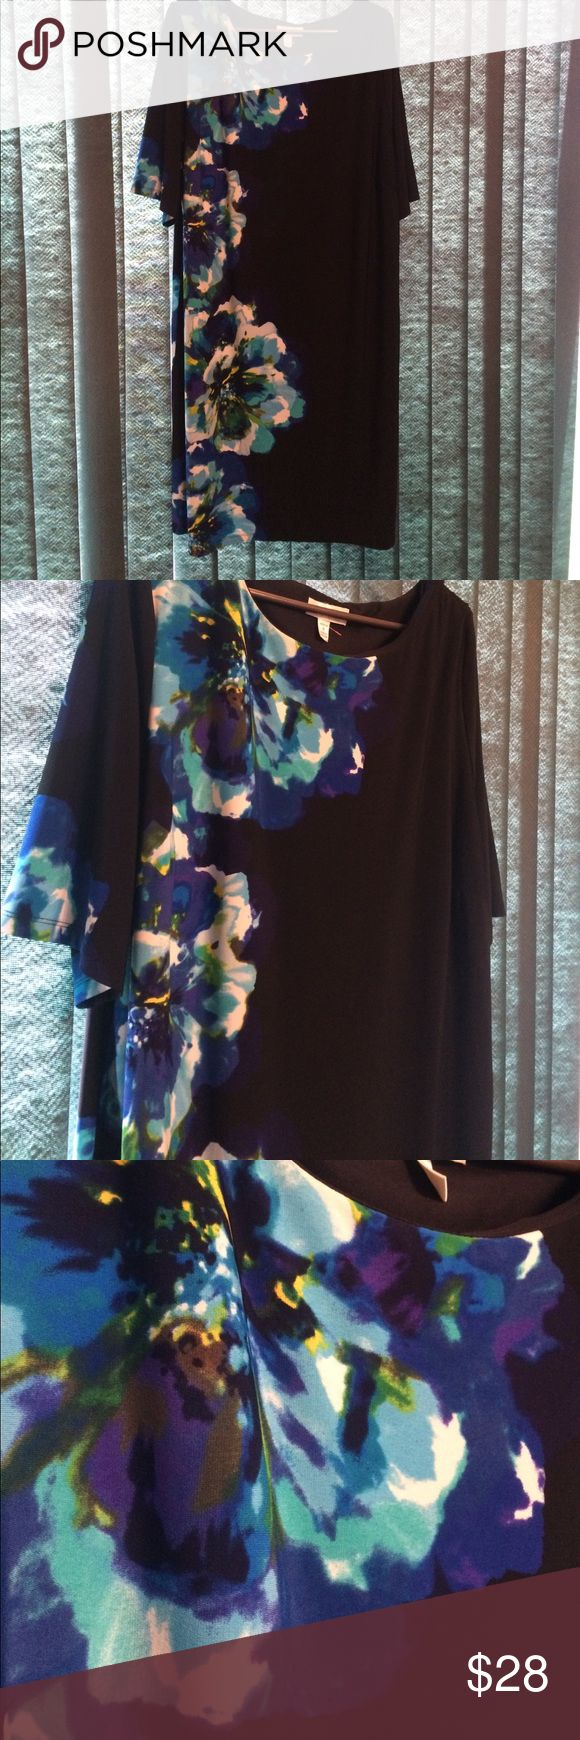 "Plus Size Dressbarn Dress Size 22 Black with beautiful vibrant floral design down one side. Really lovely. Approximate length 42.5"" chest 24.5"" Dressbarn Dresses"